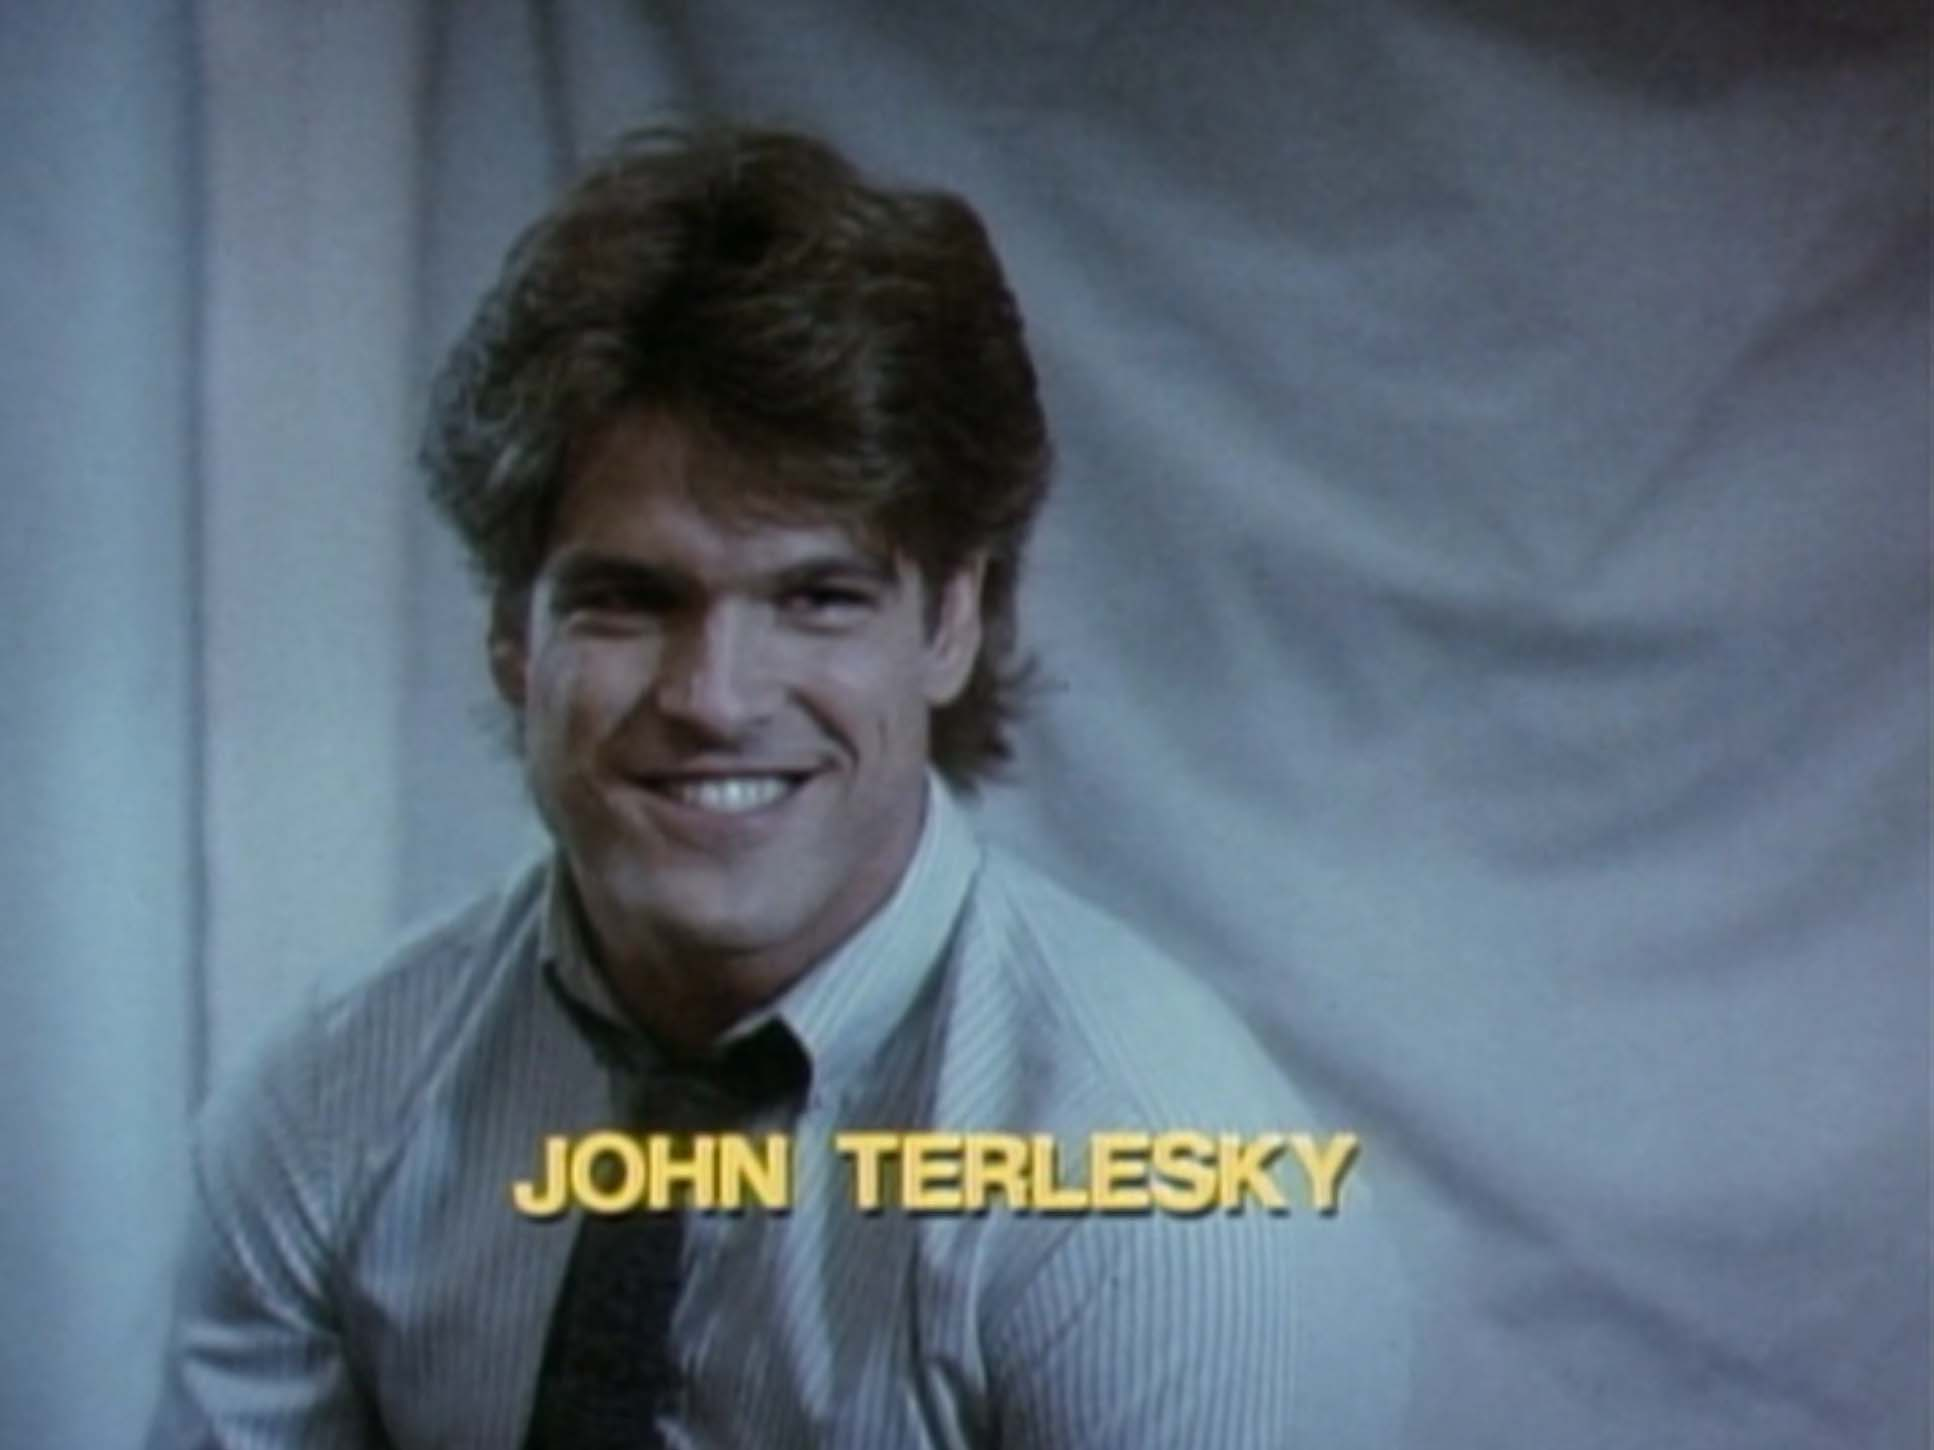 John Terlesky in Chopping Mall (1986)